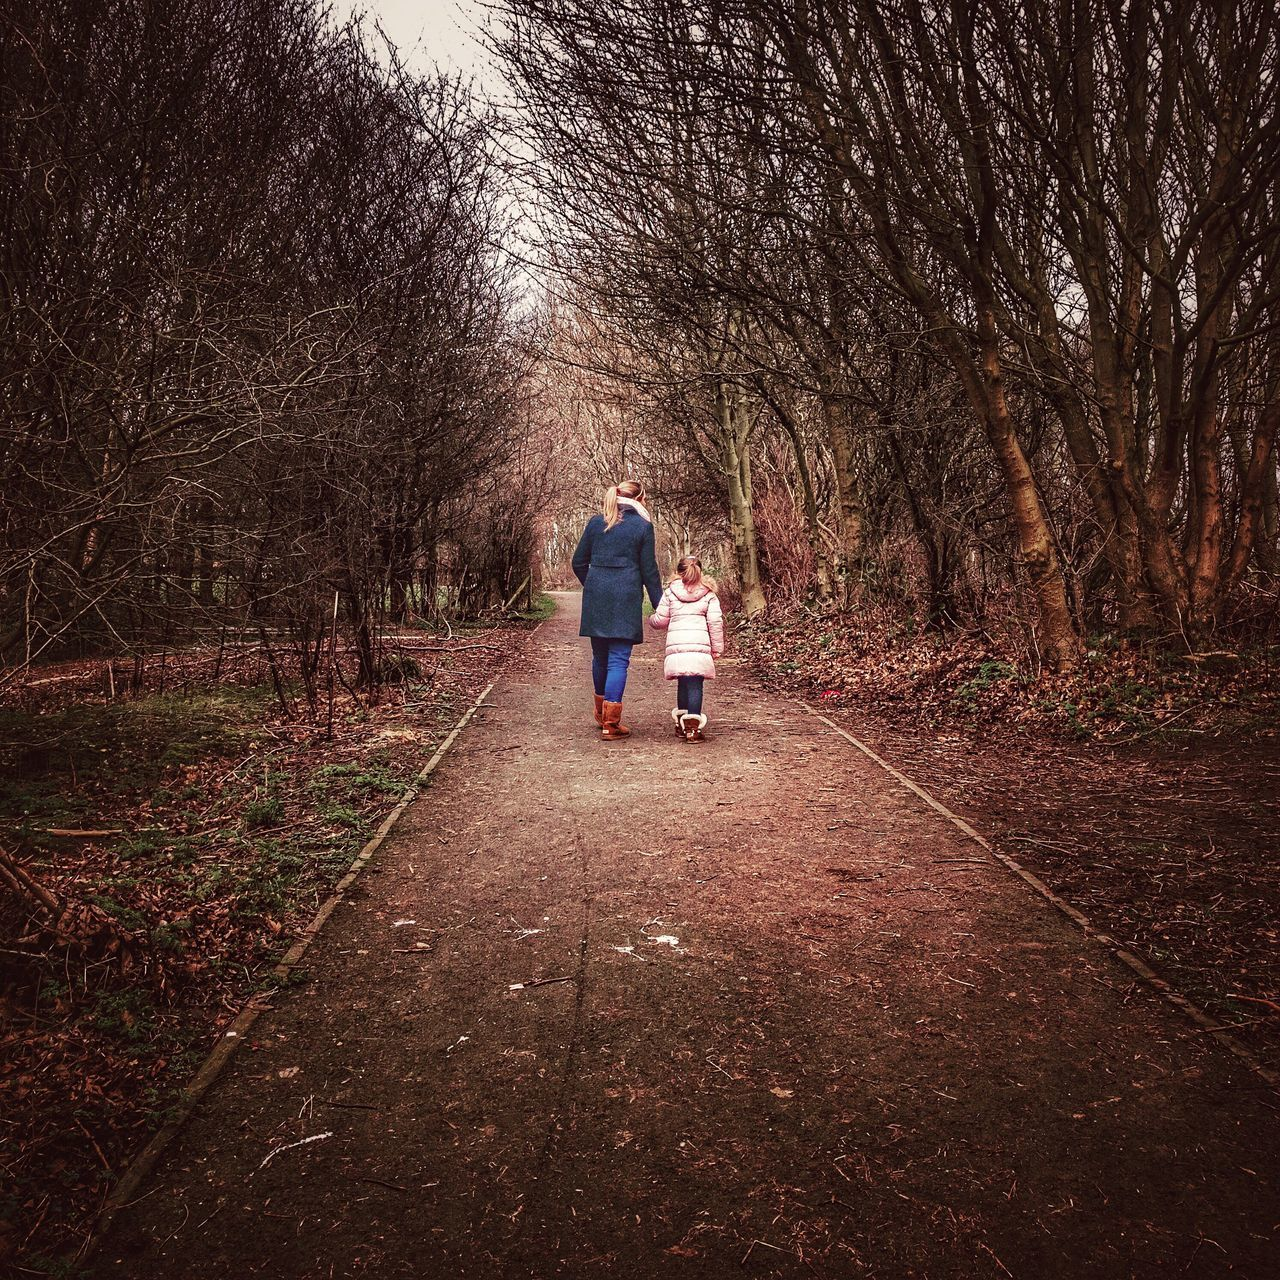 Shotoniphone7plus IPhoneography ShotOnIphone IPhone Iphoneonly Sophia ❤️️ Mother & Daughter Two People Tree Rear View Full Length Bare Tree Real People The Way Forward Togetherness Men Women Nature Outdoors Day People Adult Walking